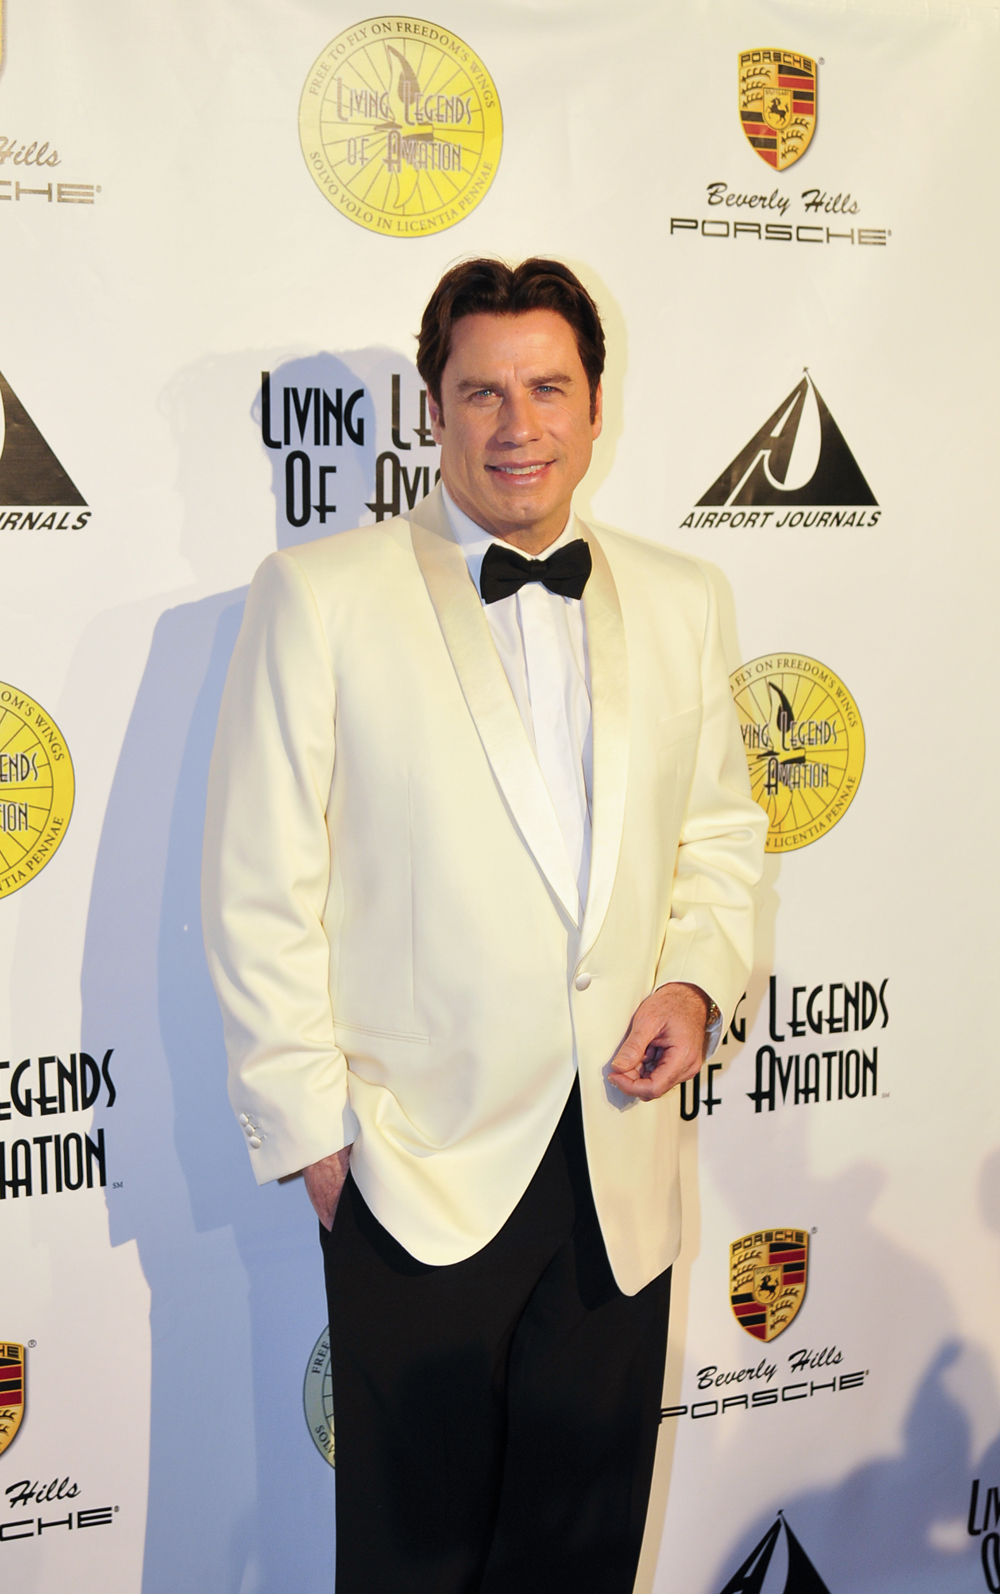 5th Annual Living Legends of Aviation Award Ceremony Honors John Travolta and Other Legends